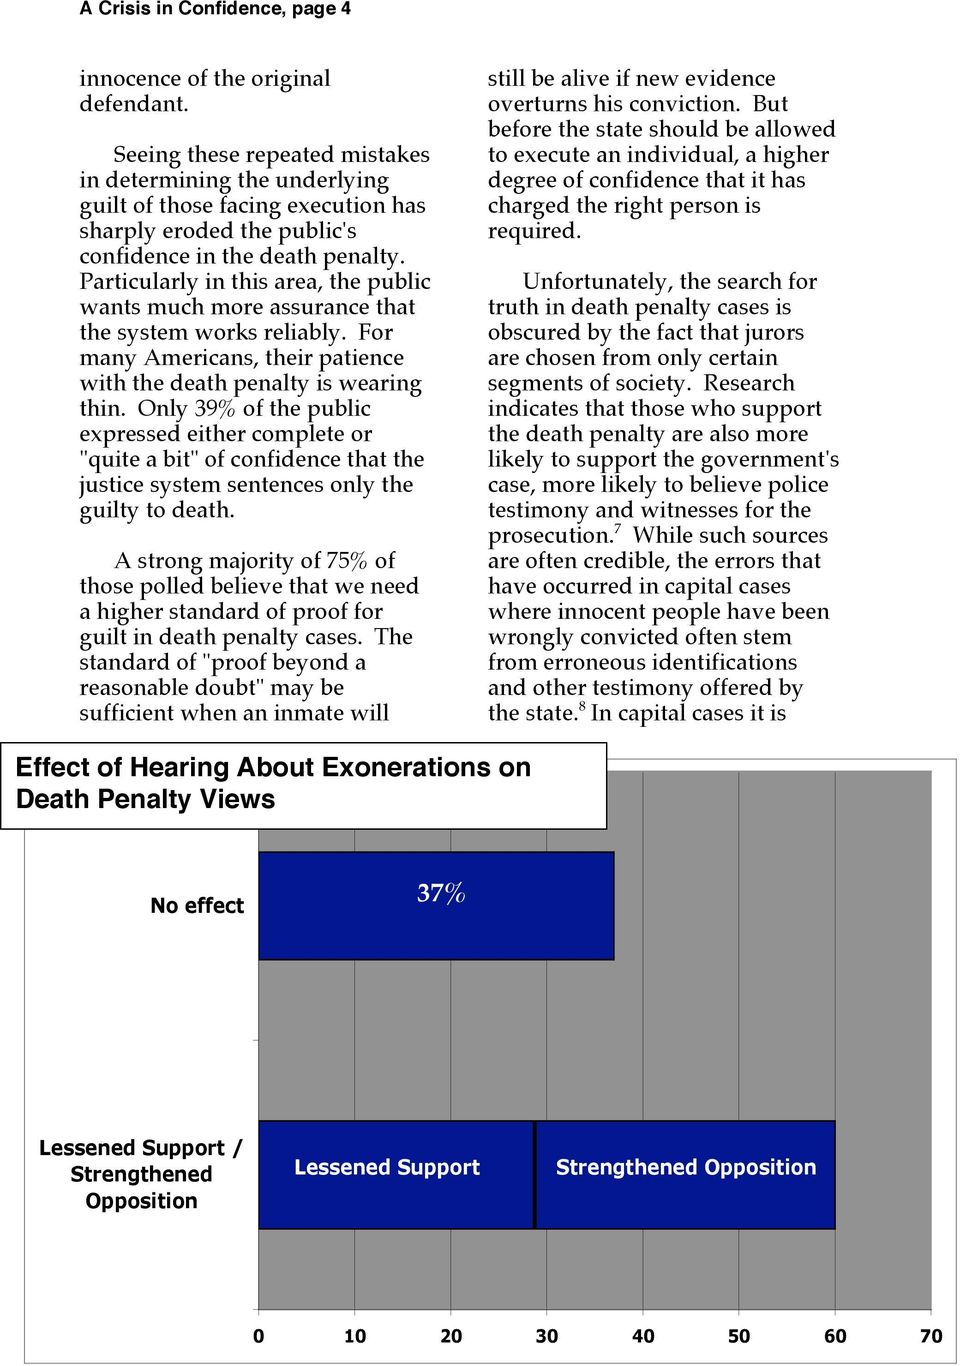 Particularly in this area, the public wants much more assurance that the system works reliably. For many Americans, their patience with the death penalty is wearing thin.